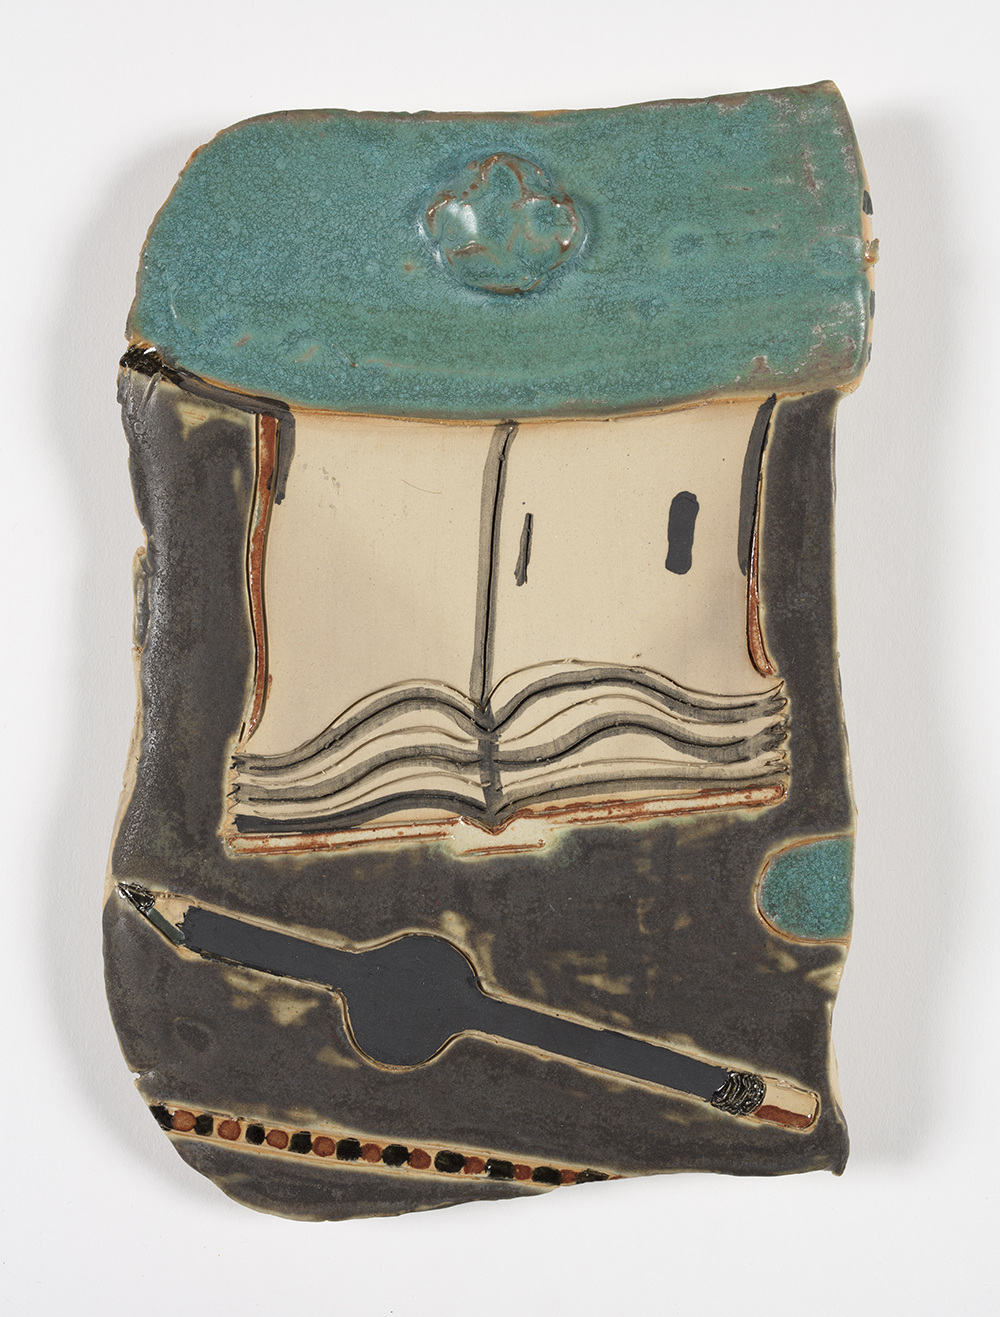 Kevin McNamee-Tweed. <em> Notebook 33</em>, 2019. Glazed ceramic, 10 1/2 x 8 inches  (26.7 x 20.3 cm)